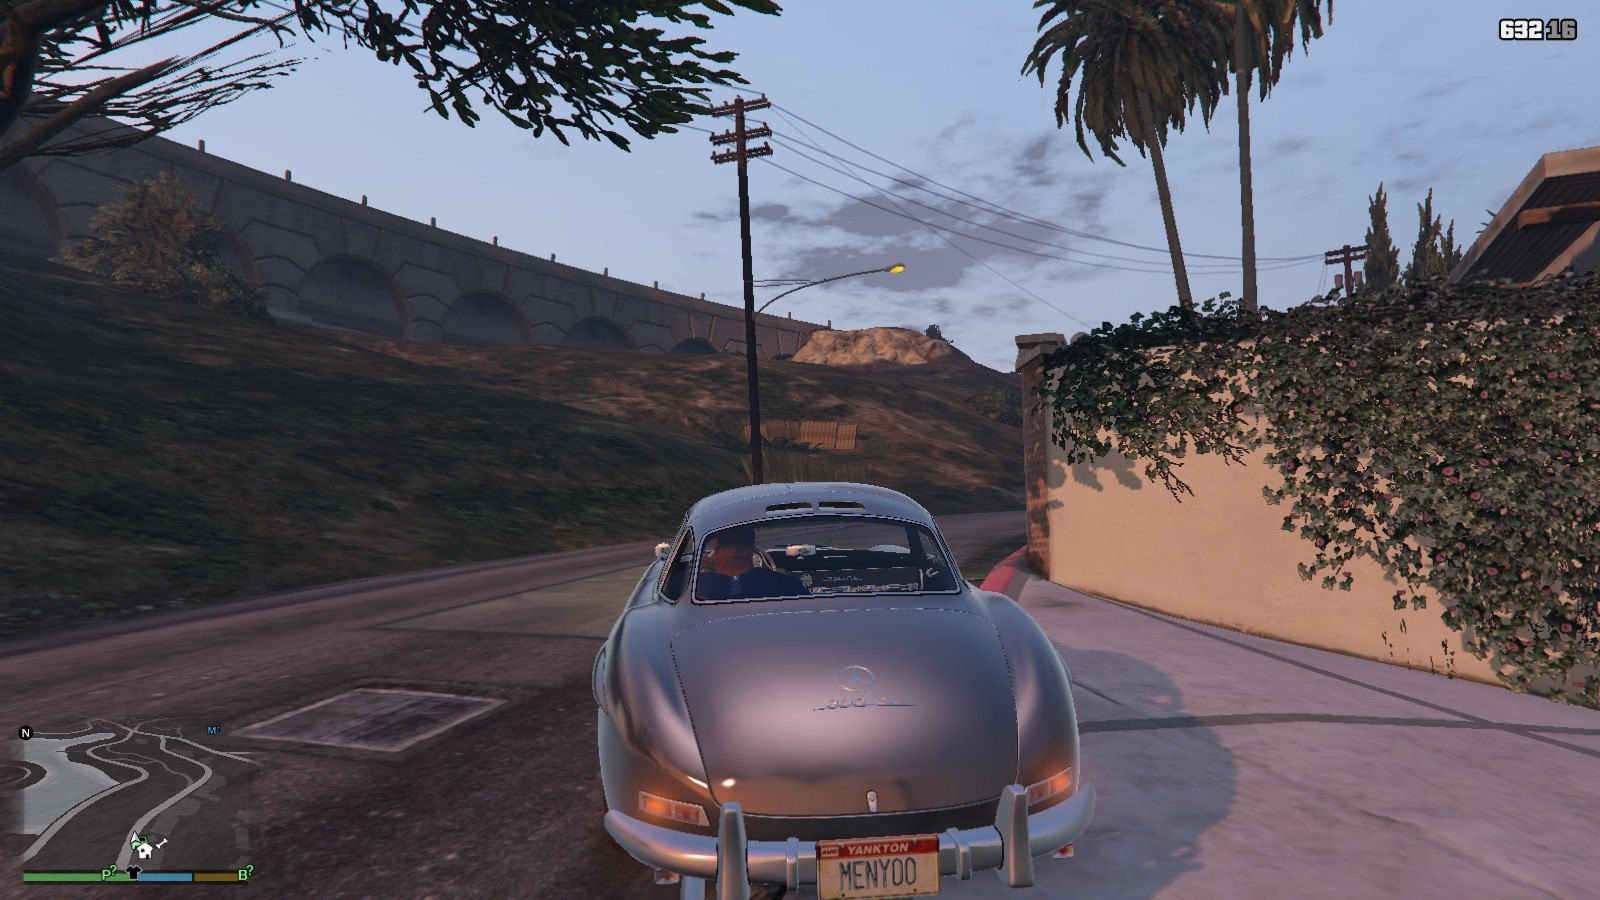 Mercedes Benz 300SL GTA5 Mods (4)